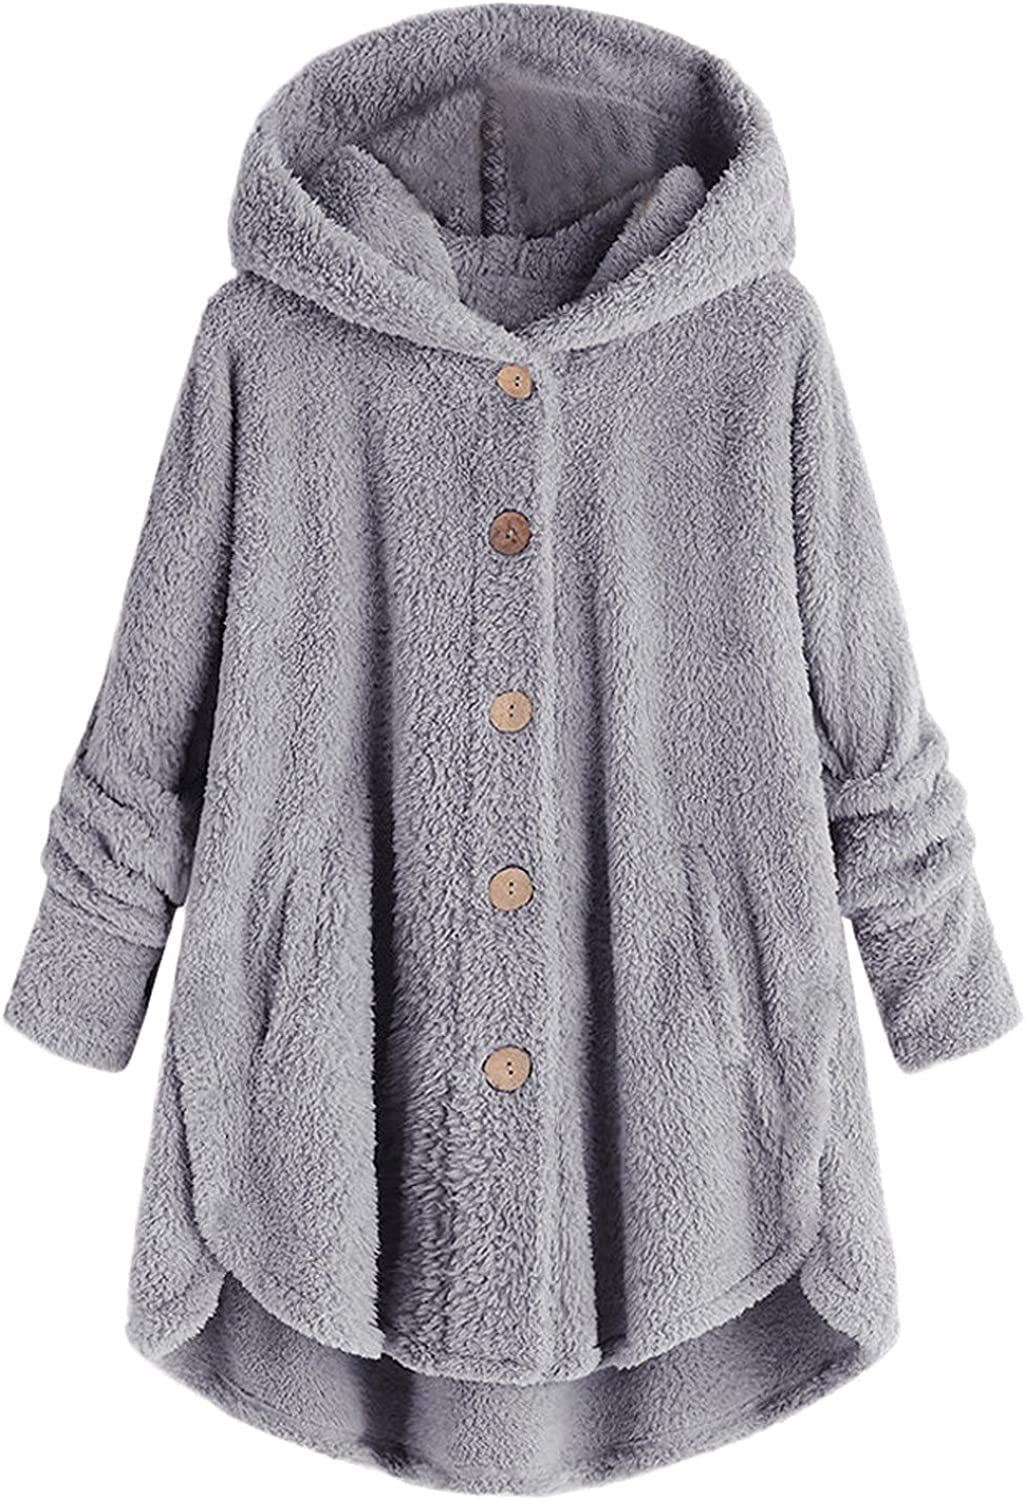 Plush Pockets Hoodies for Women Buttons Down Warm Cardigan Tops Plus Size Long Sleeve Sweater Coat